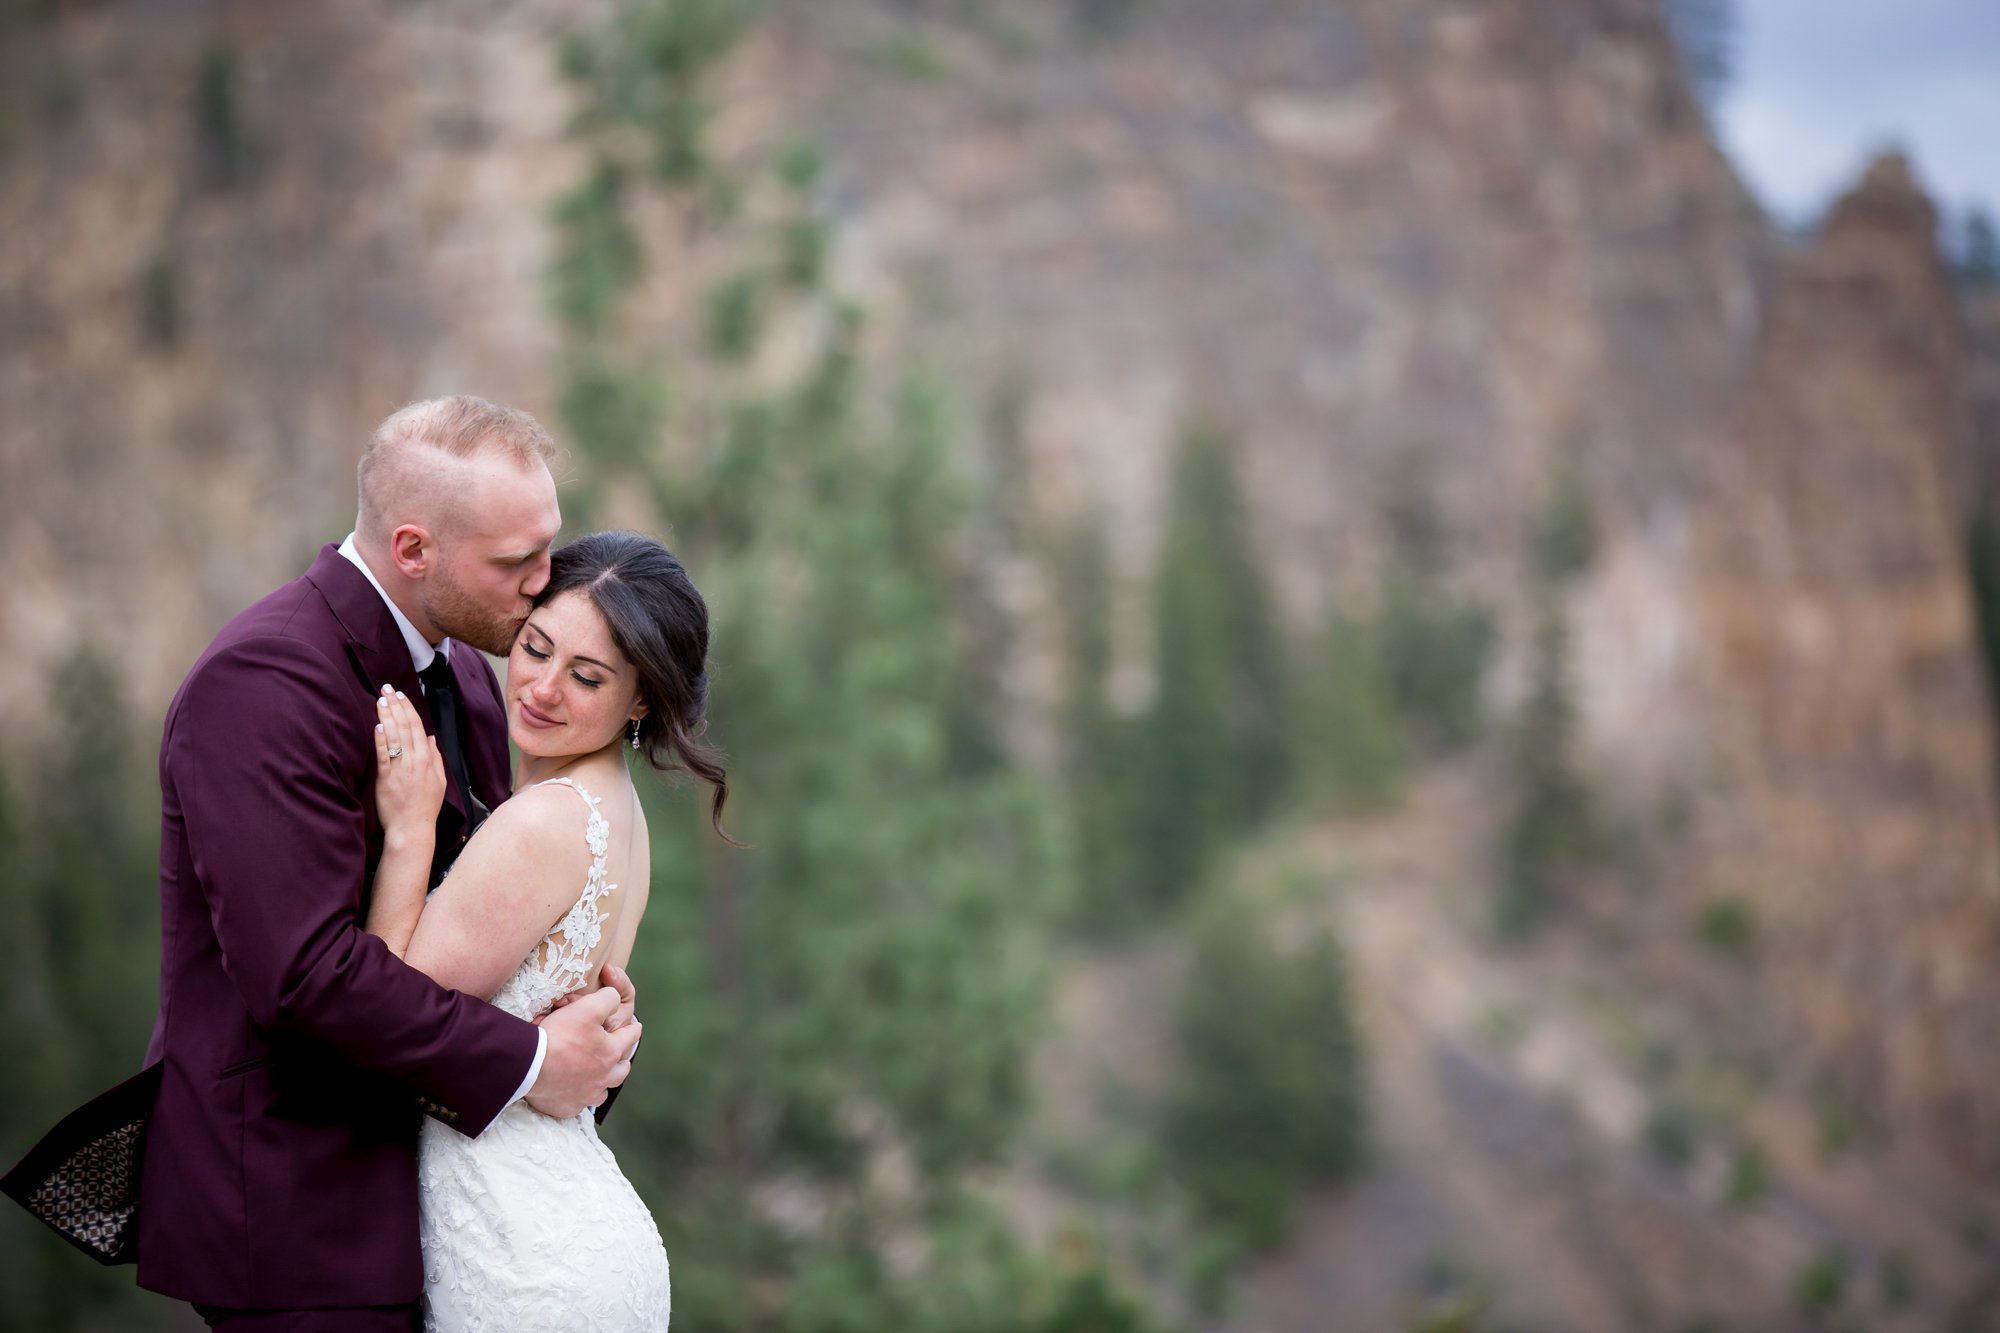 A groom kissing his bride in the wind